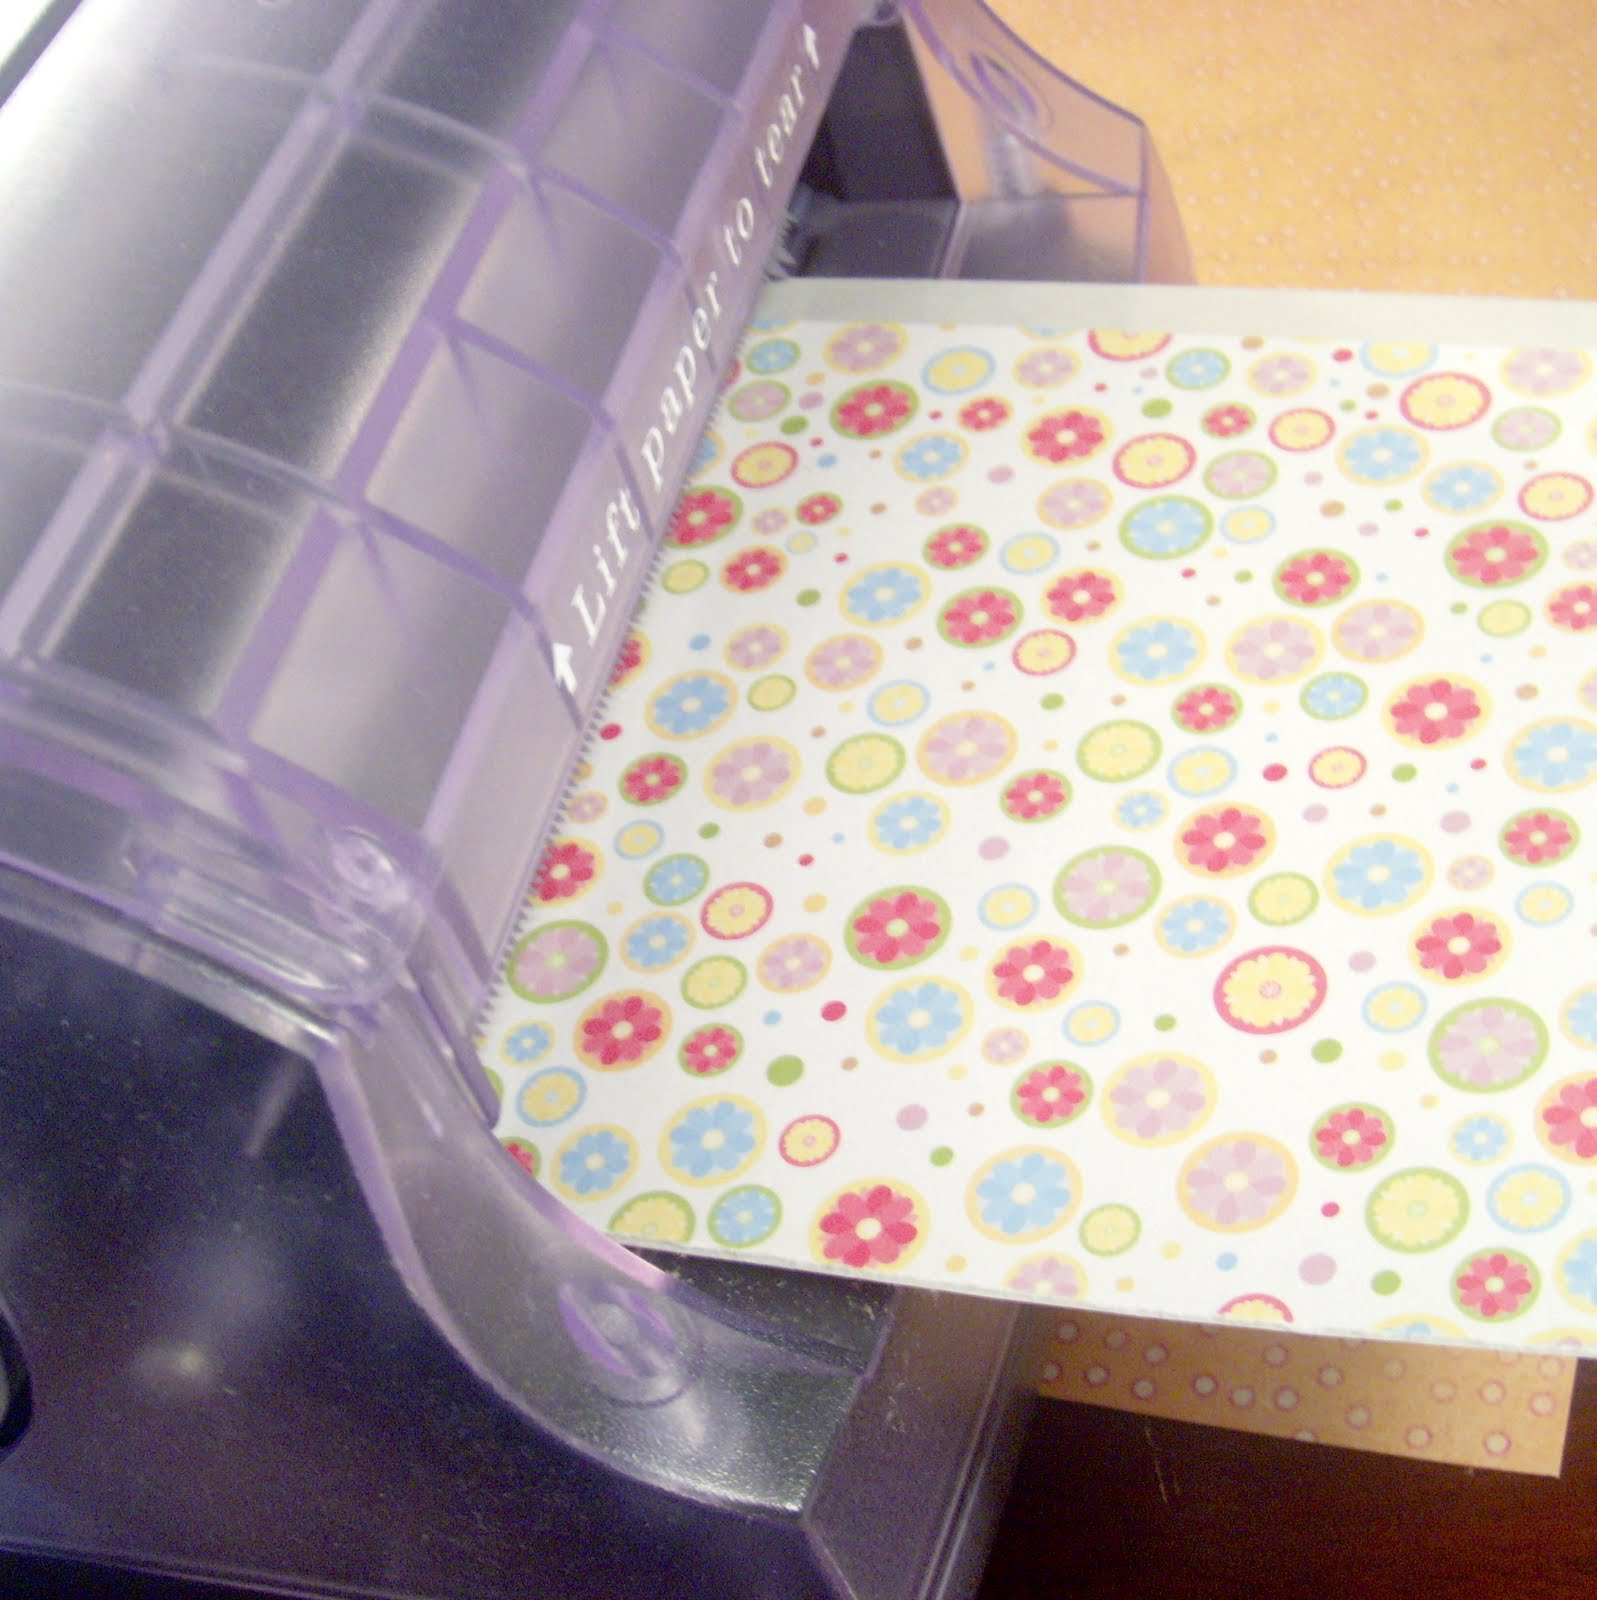 How To Make Your Own Stickers  Seals Tutorial - Make your own decal paper